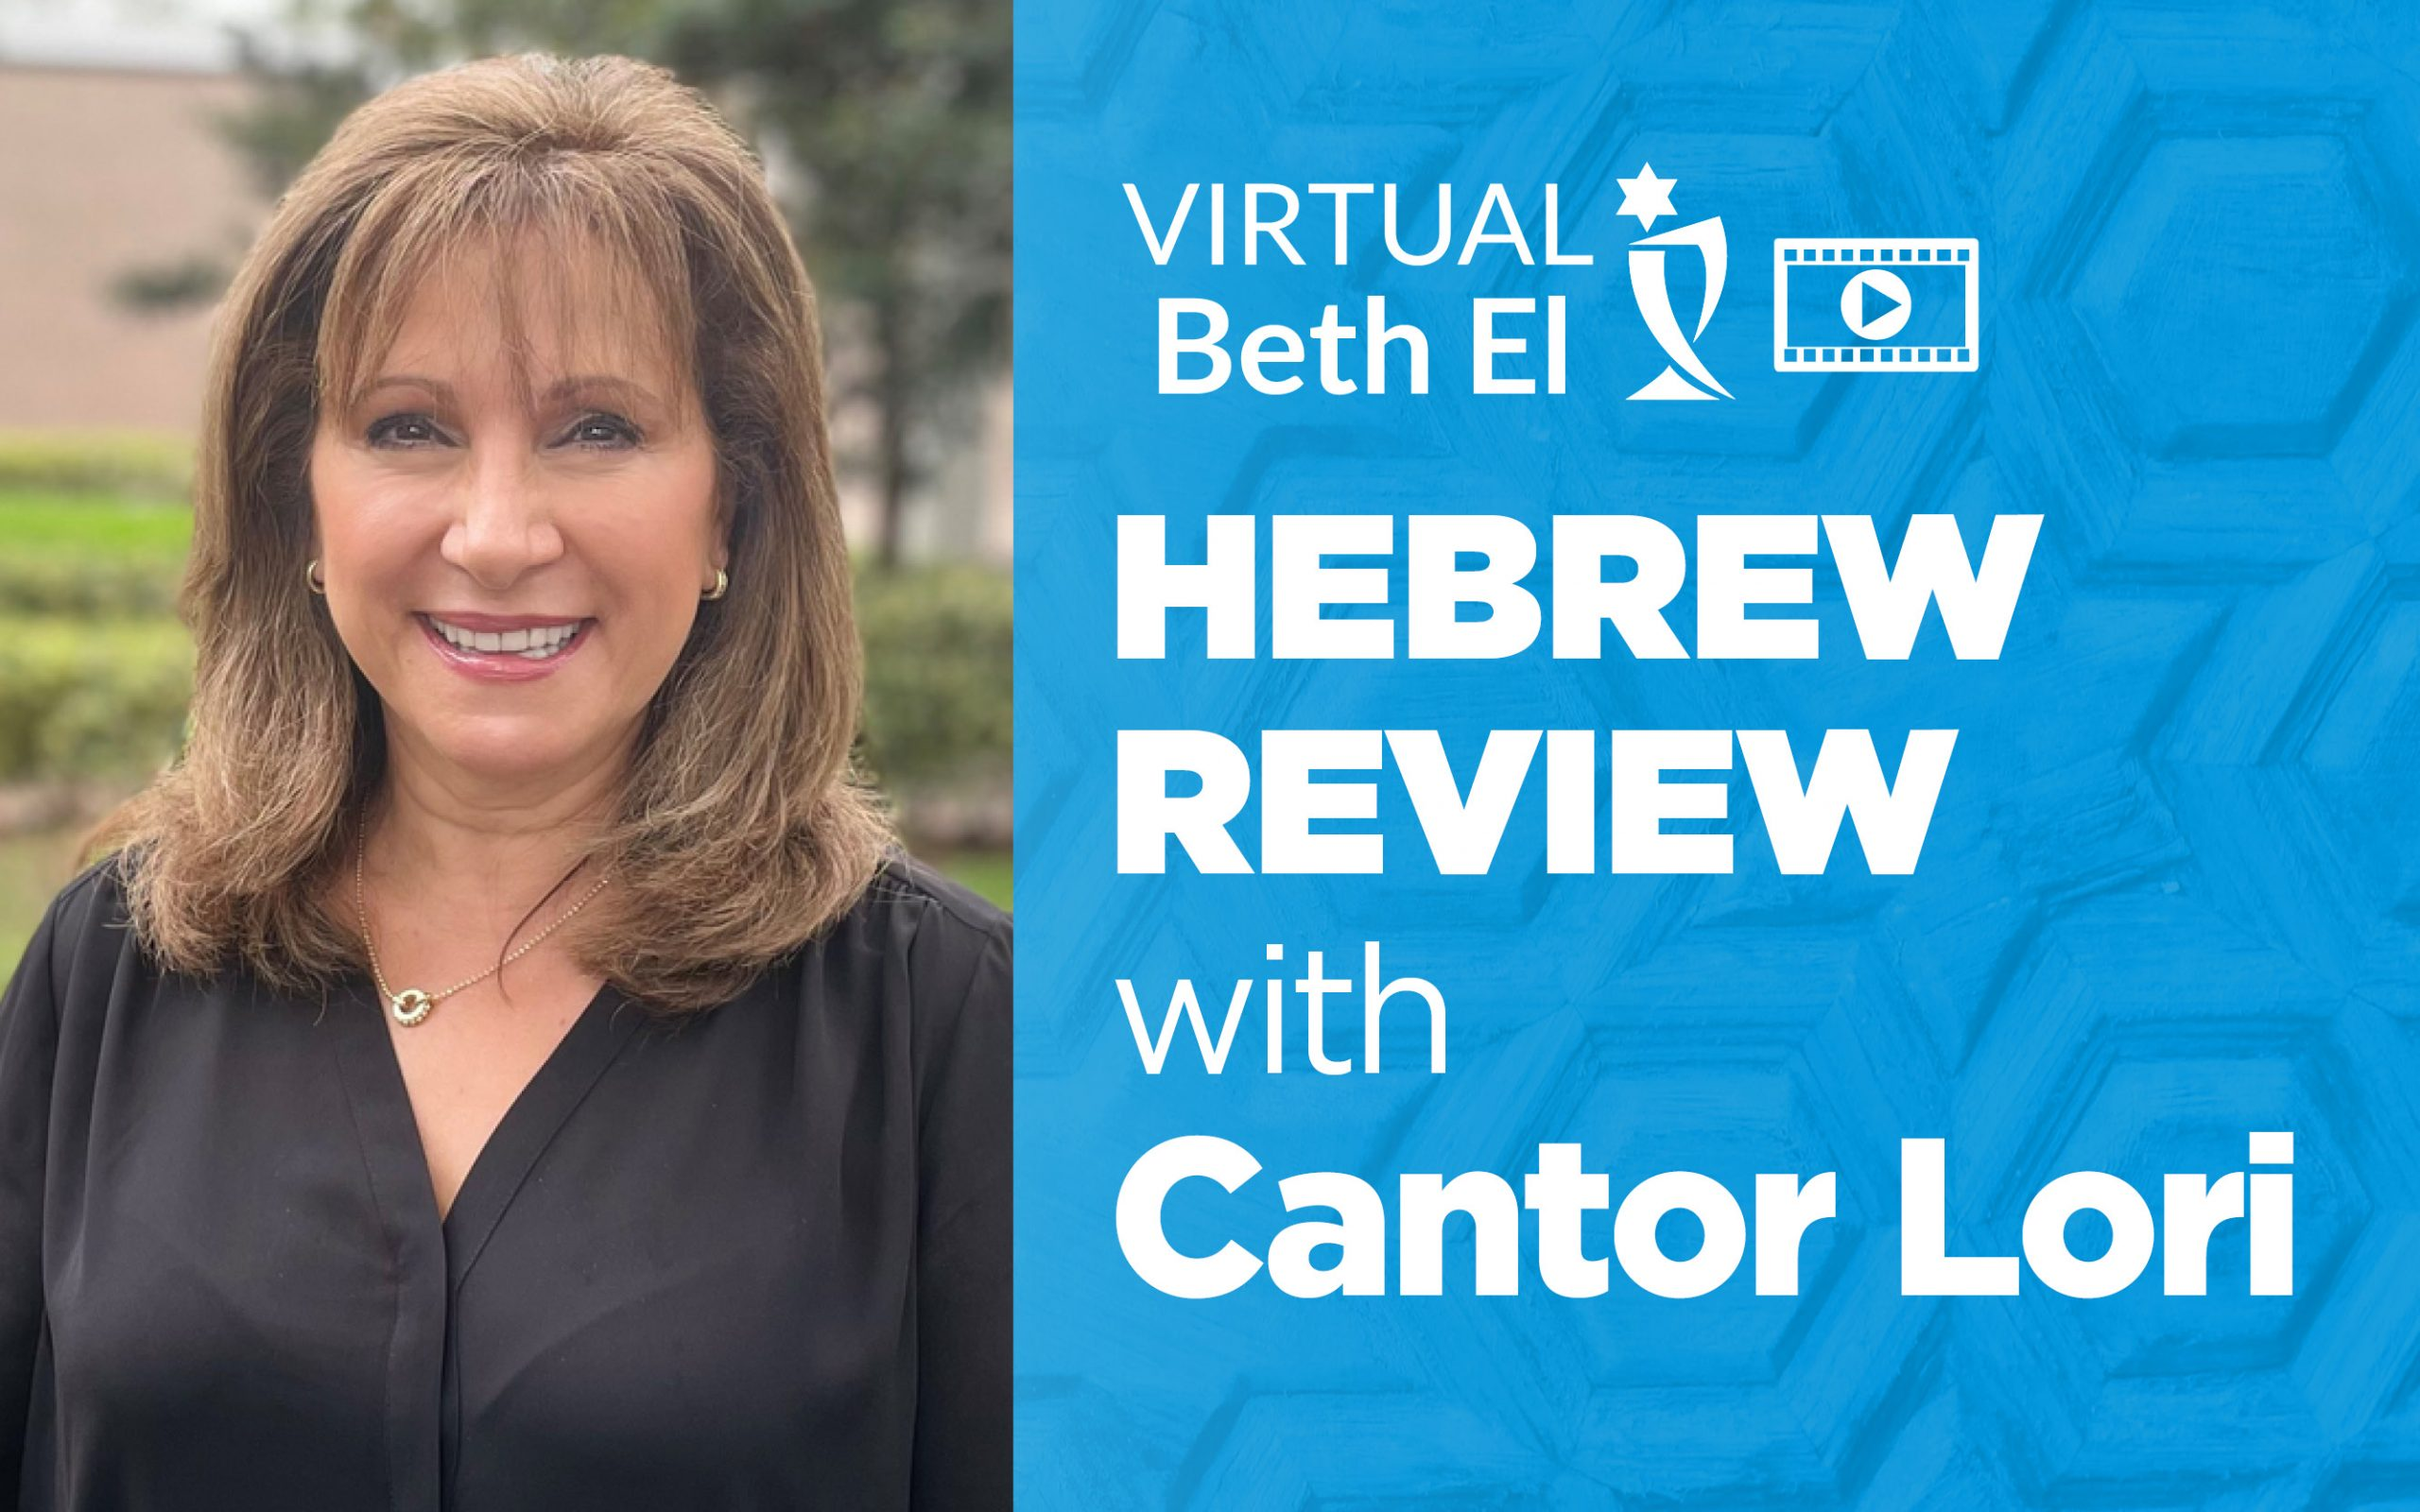 Hebrew Review with Cantor Lori Brock event graphic for Temple Beth El of Boca Raton